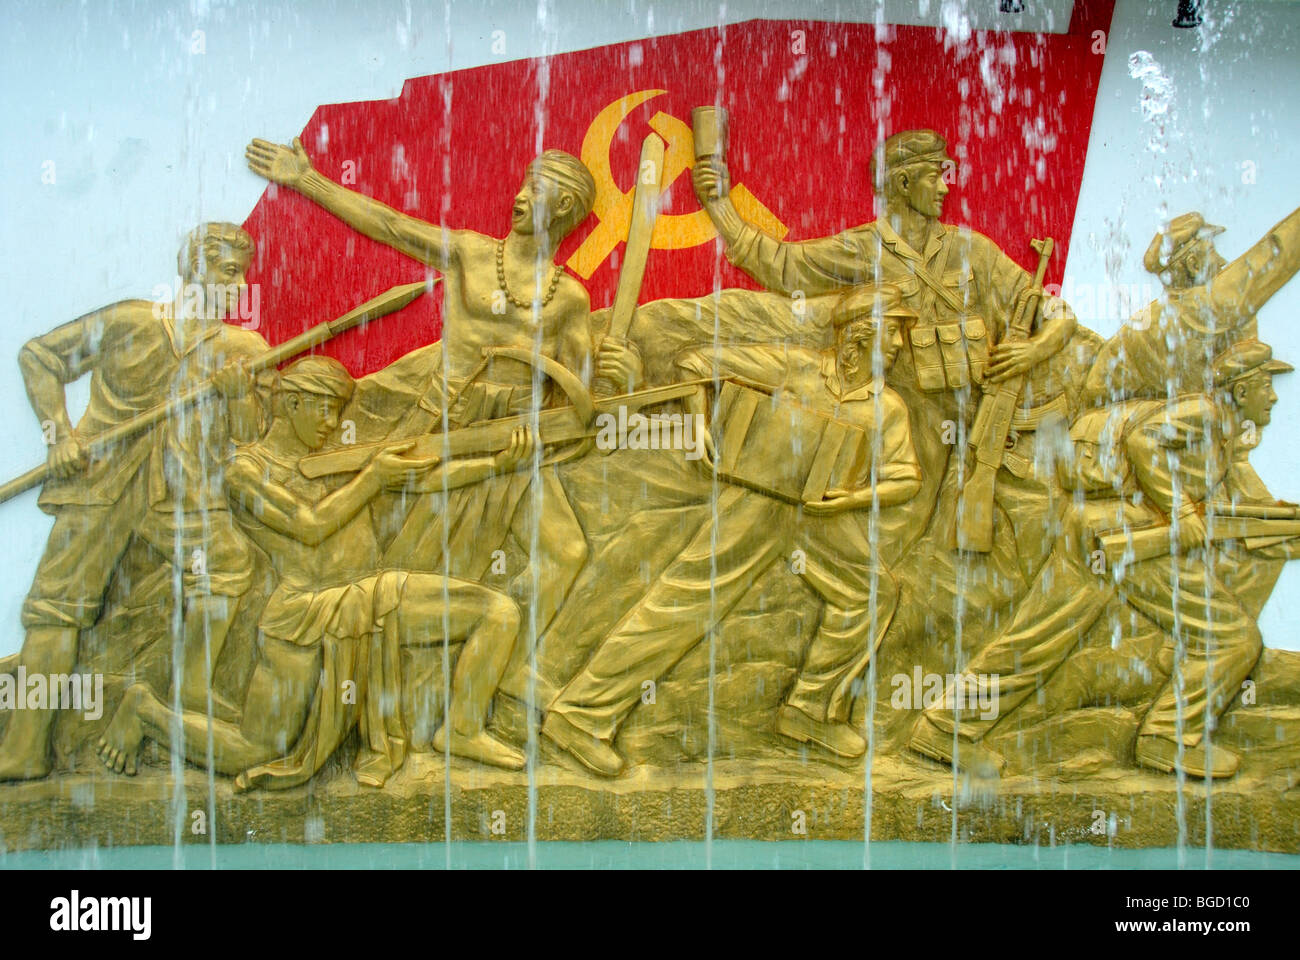 Relief, resistance struggle of the Pathet Lao, red flag of the Communist Party, fountains, monuments, Xam Neua, Stock Photo